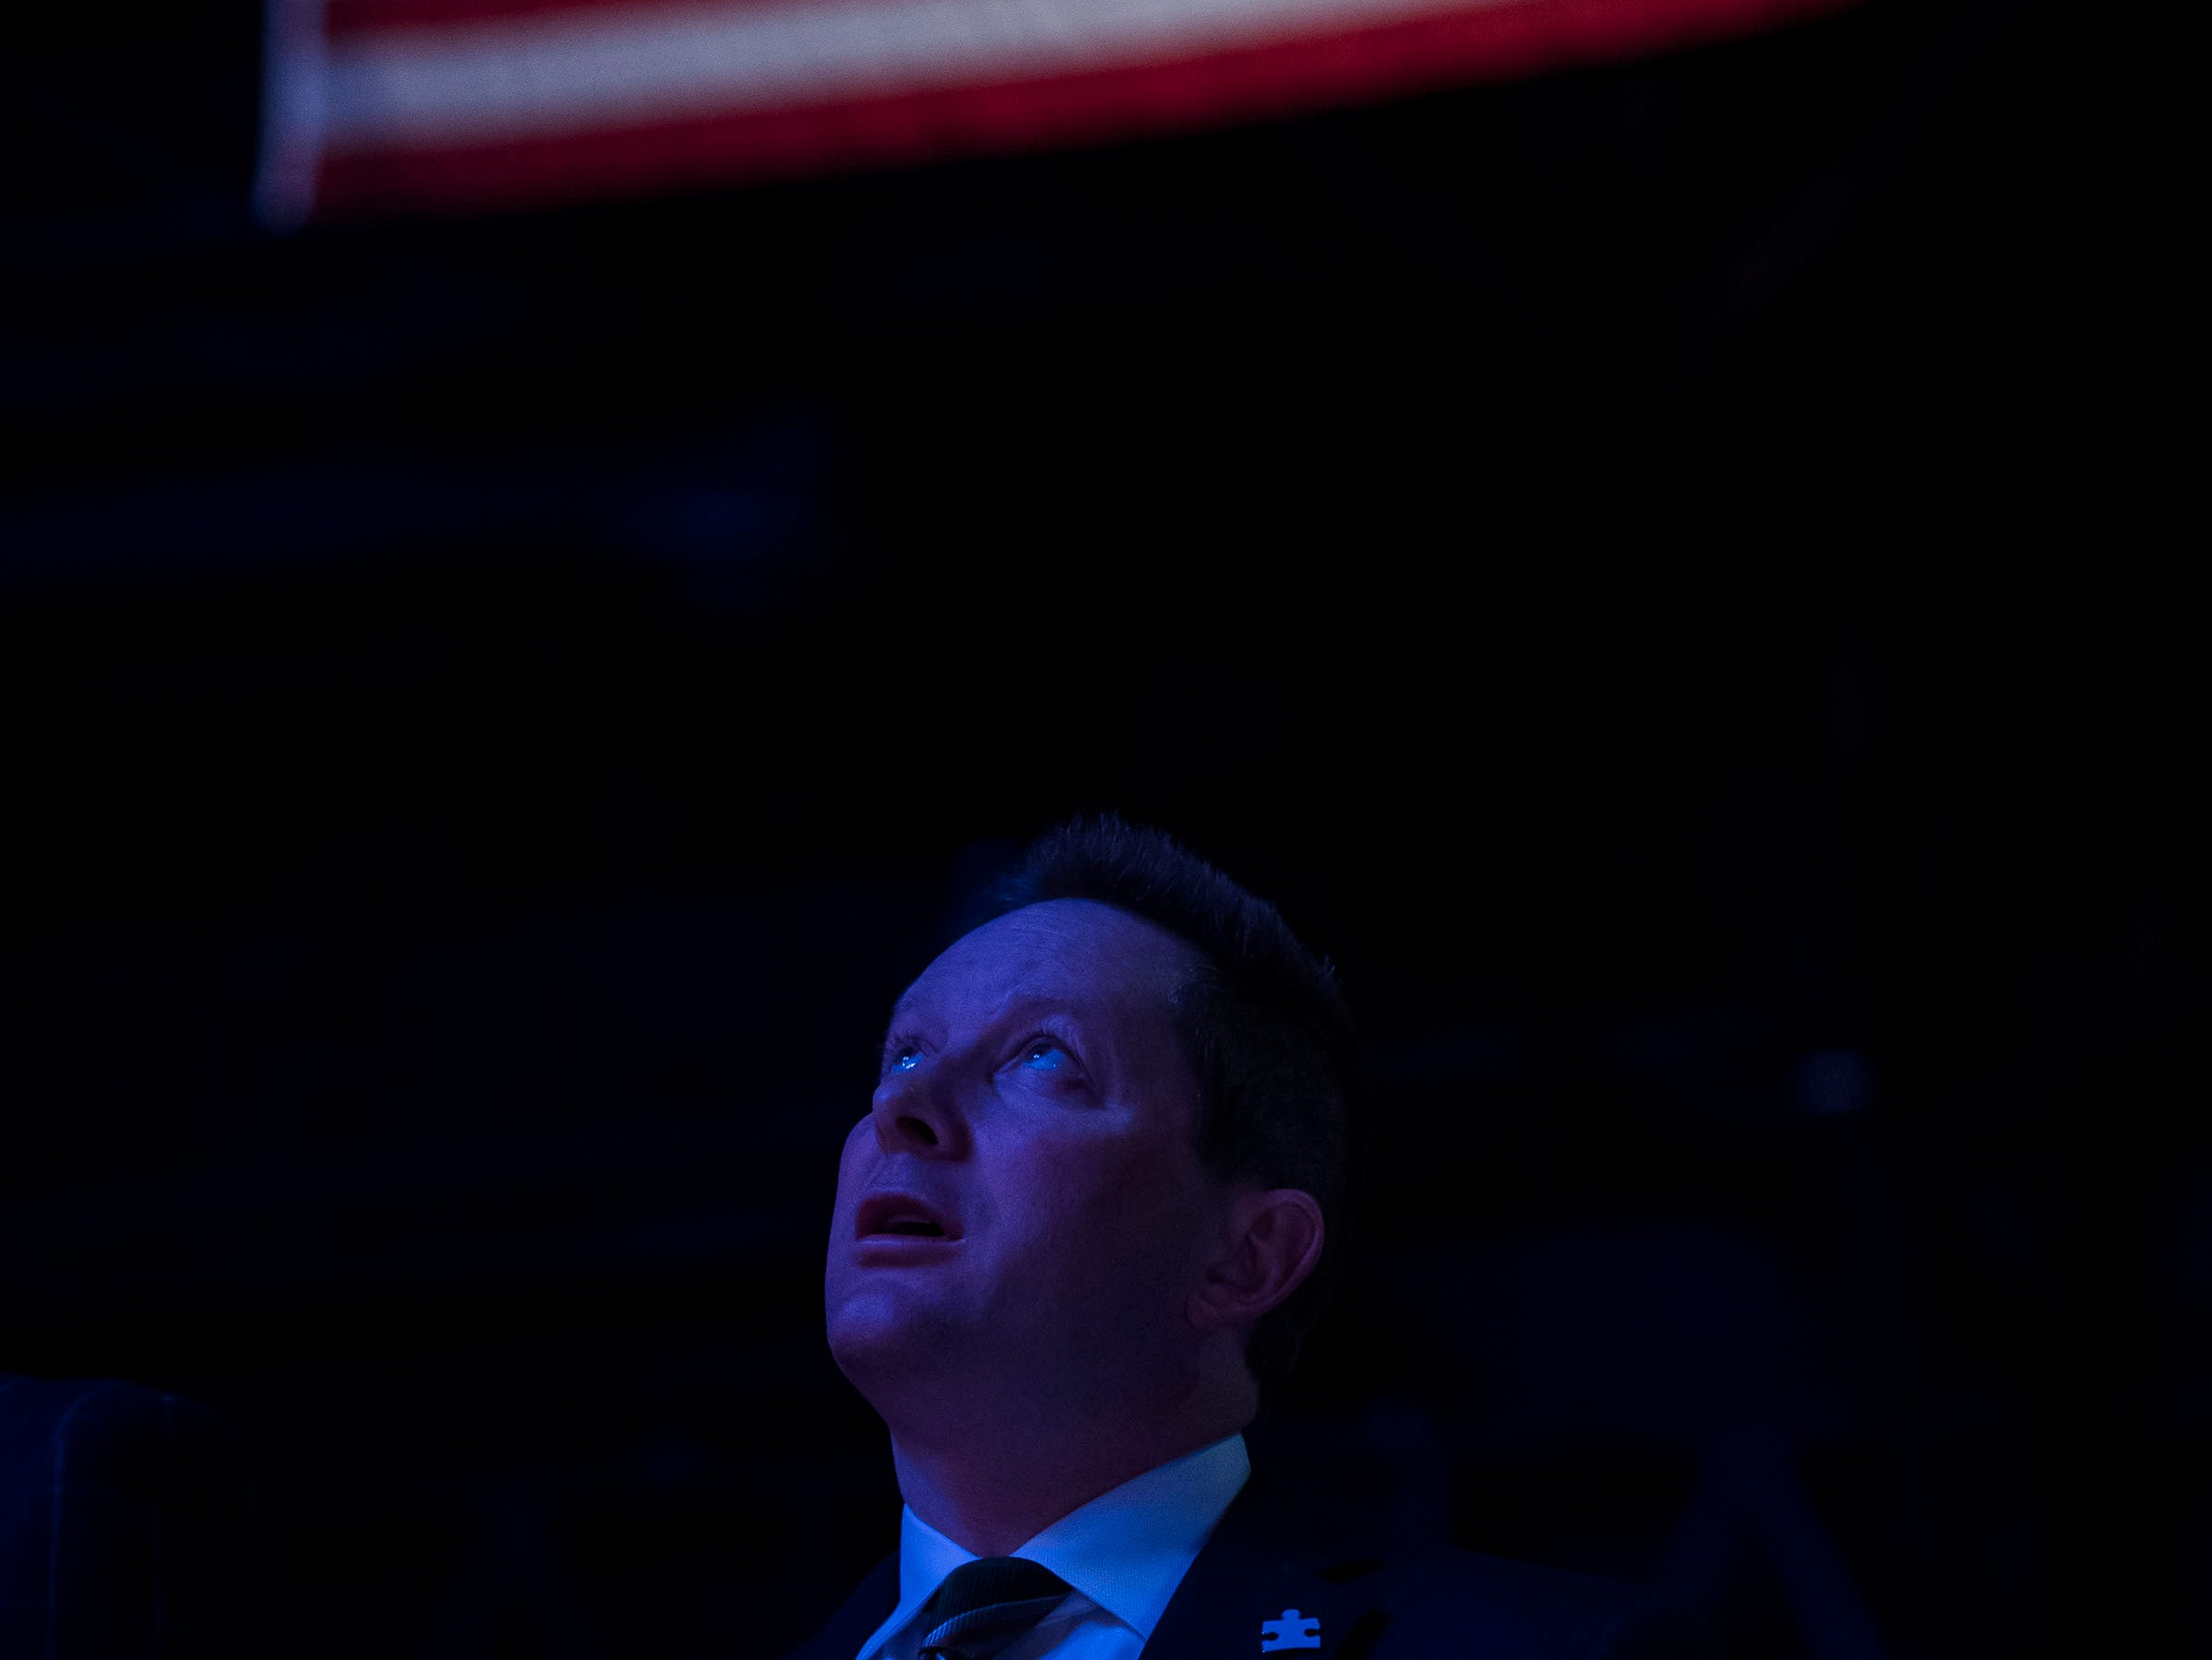 Colorado State University head coach Niko Medved looks up during the national anthem before a game against University of Nevada, Las Vegas on Saturday, March 9, 2019, at Moby Arena in Fort Collins, Colo.